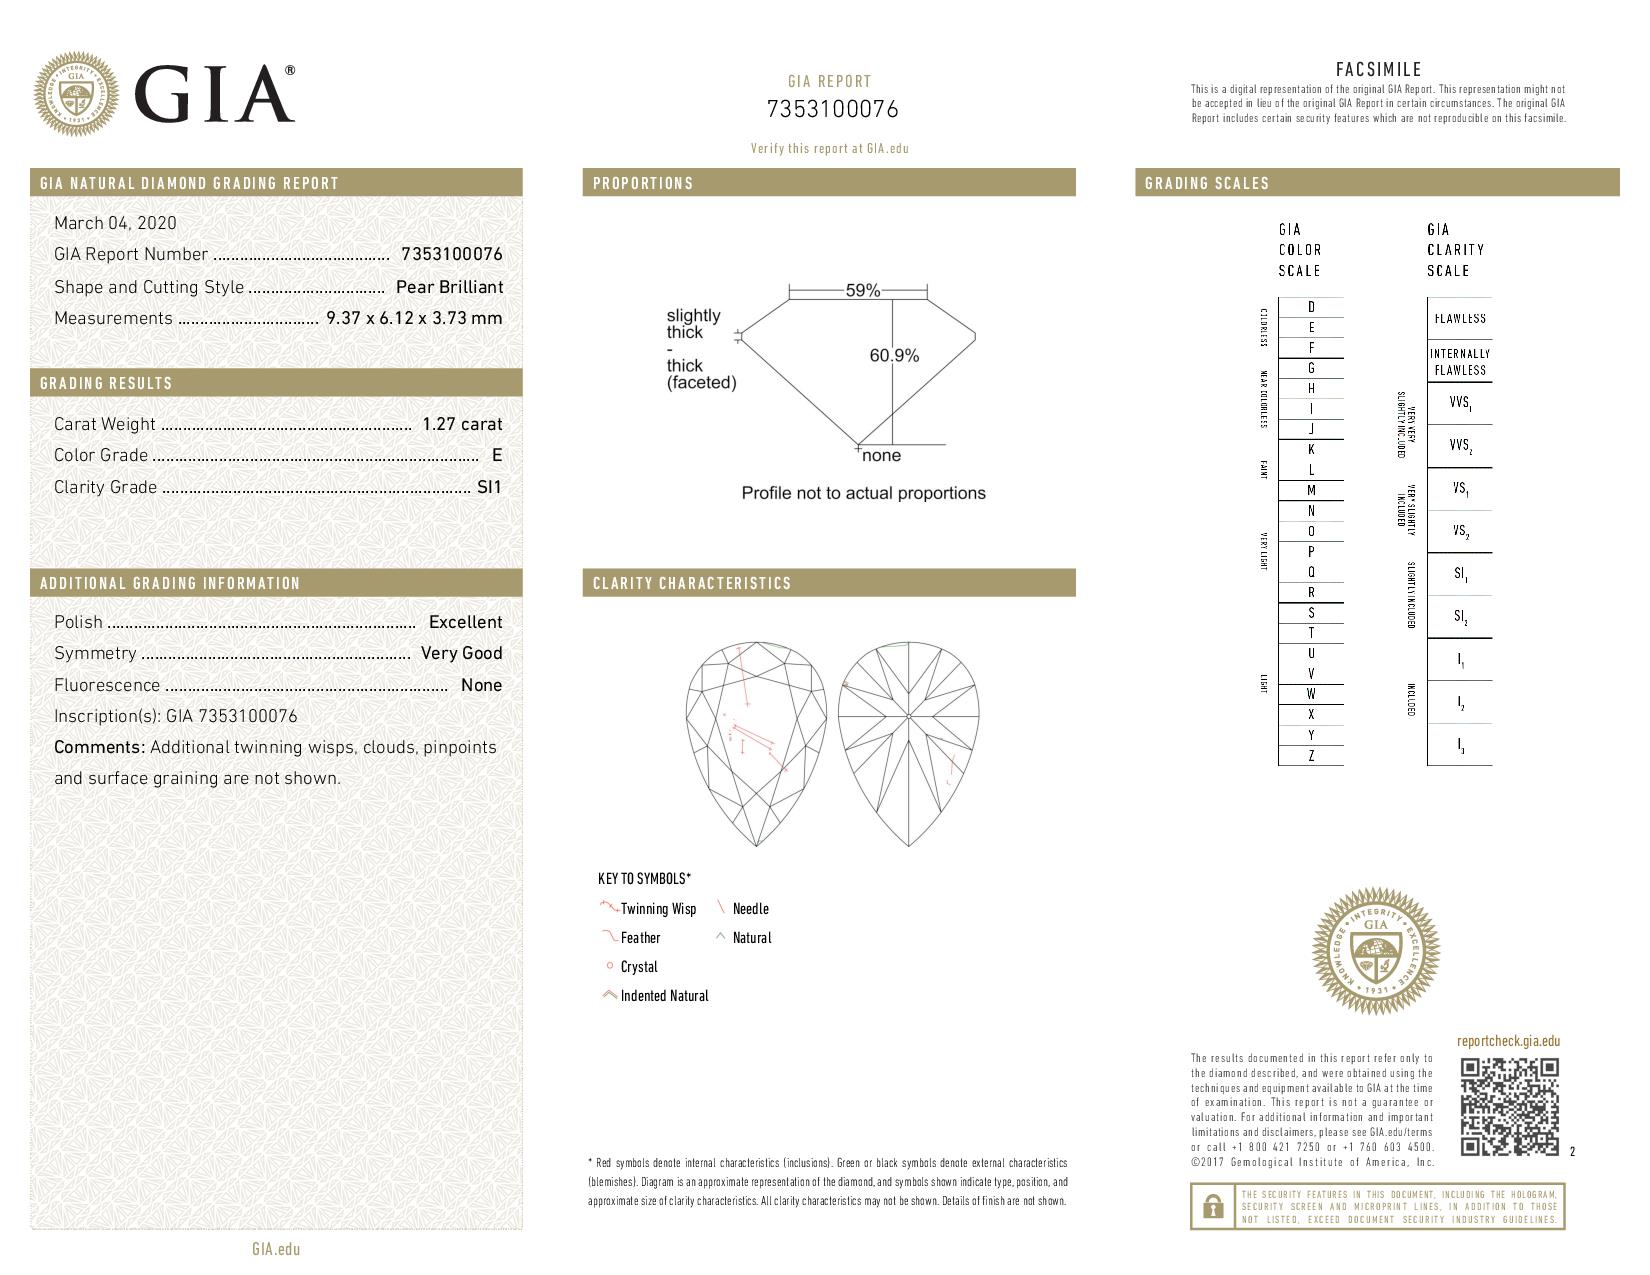 This is a 1.27 carat pear shape, E color, SI1 clarity natural diamond accompanied by a GIA grading report.